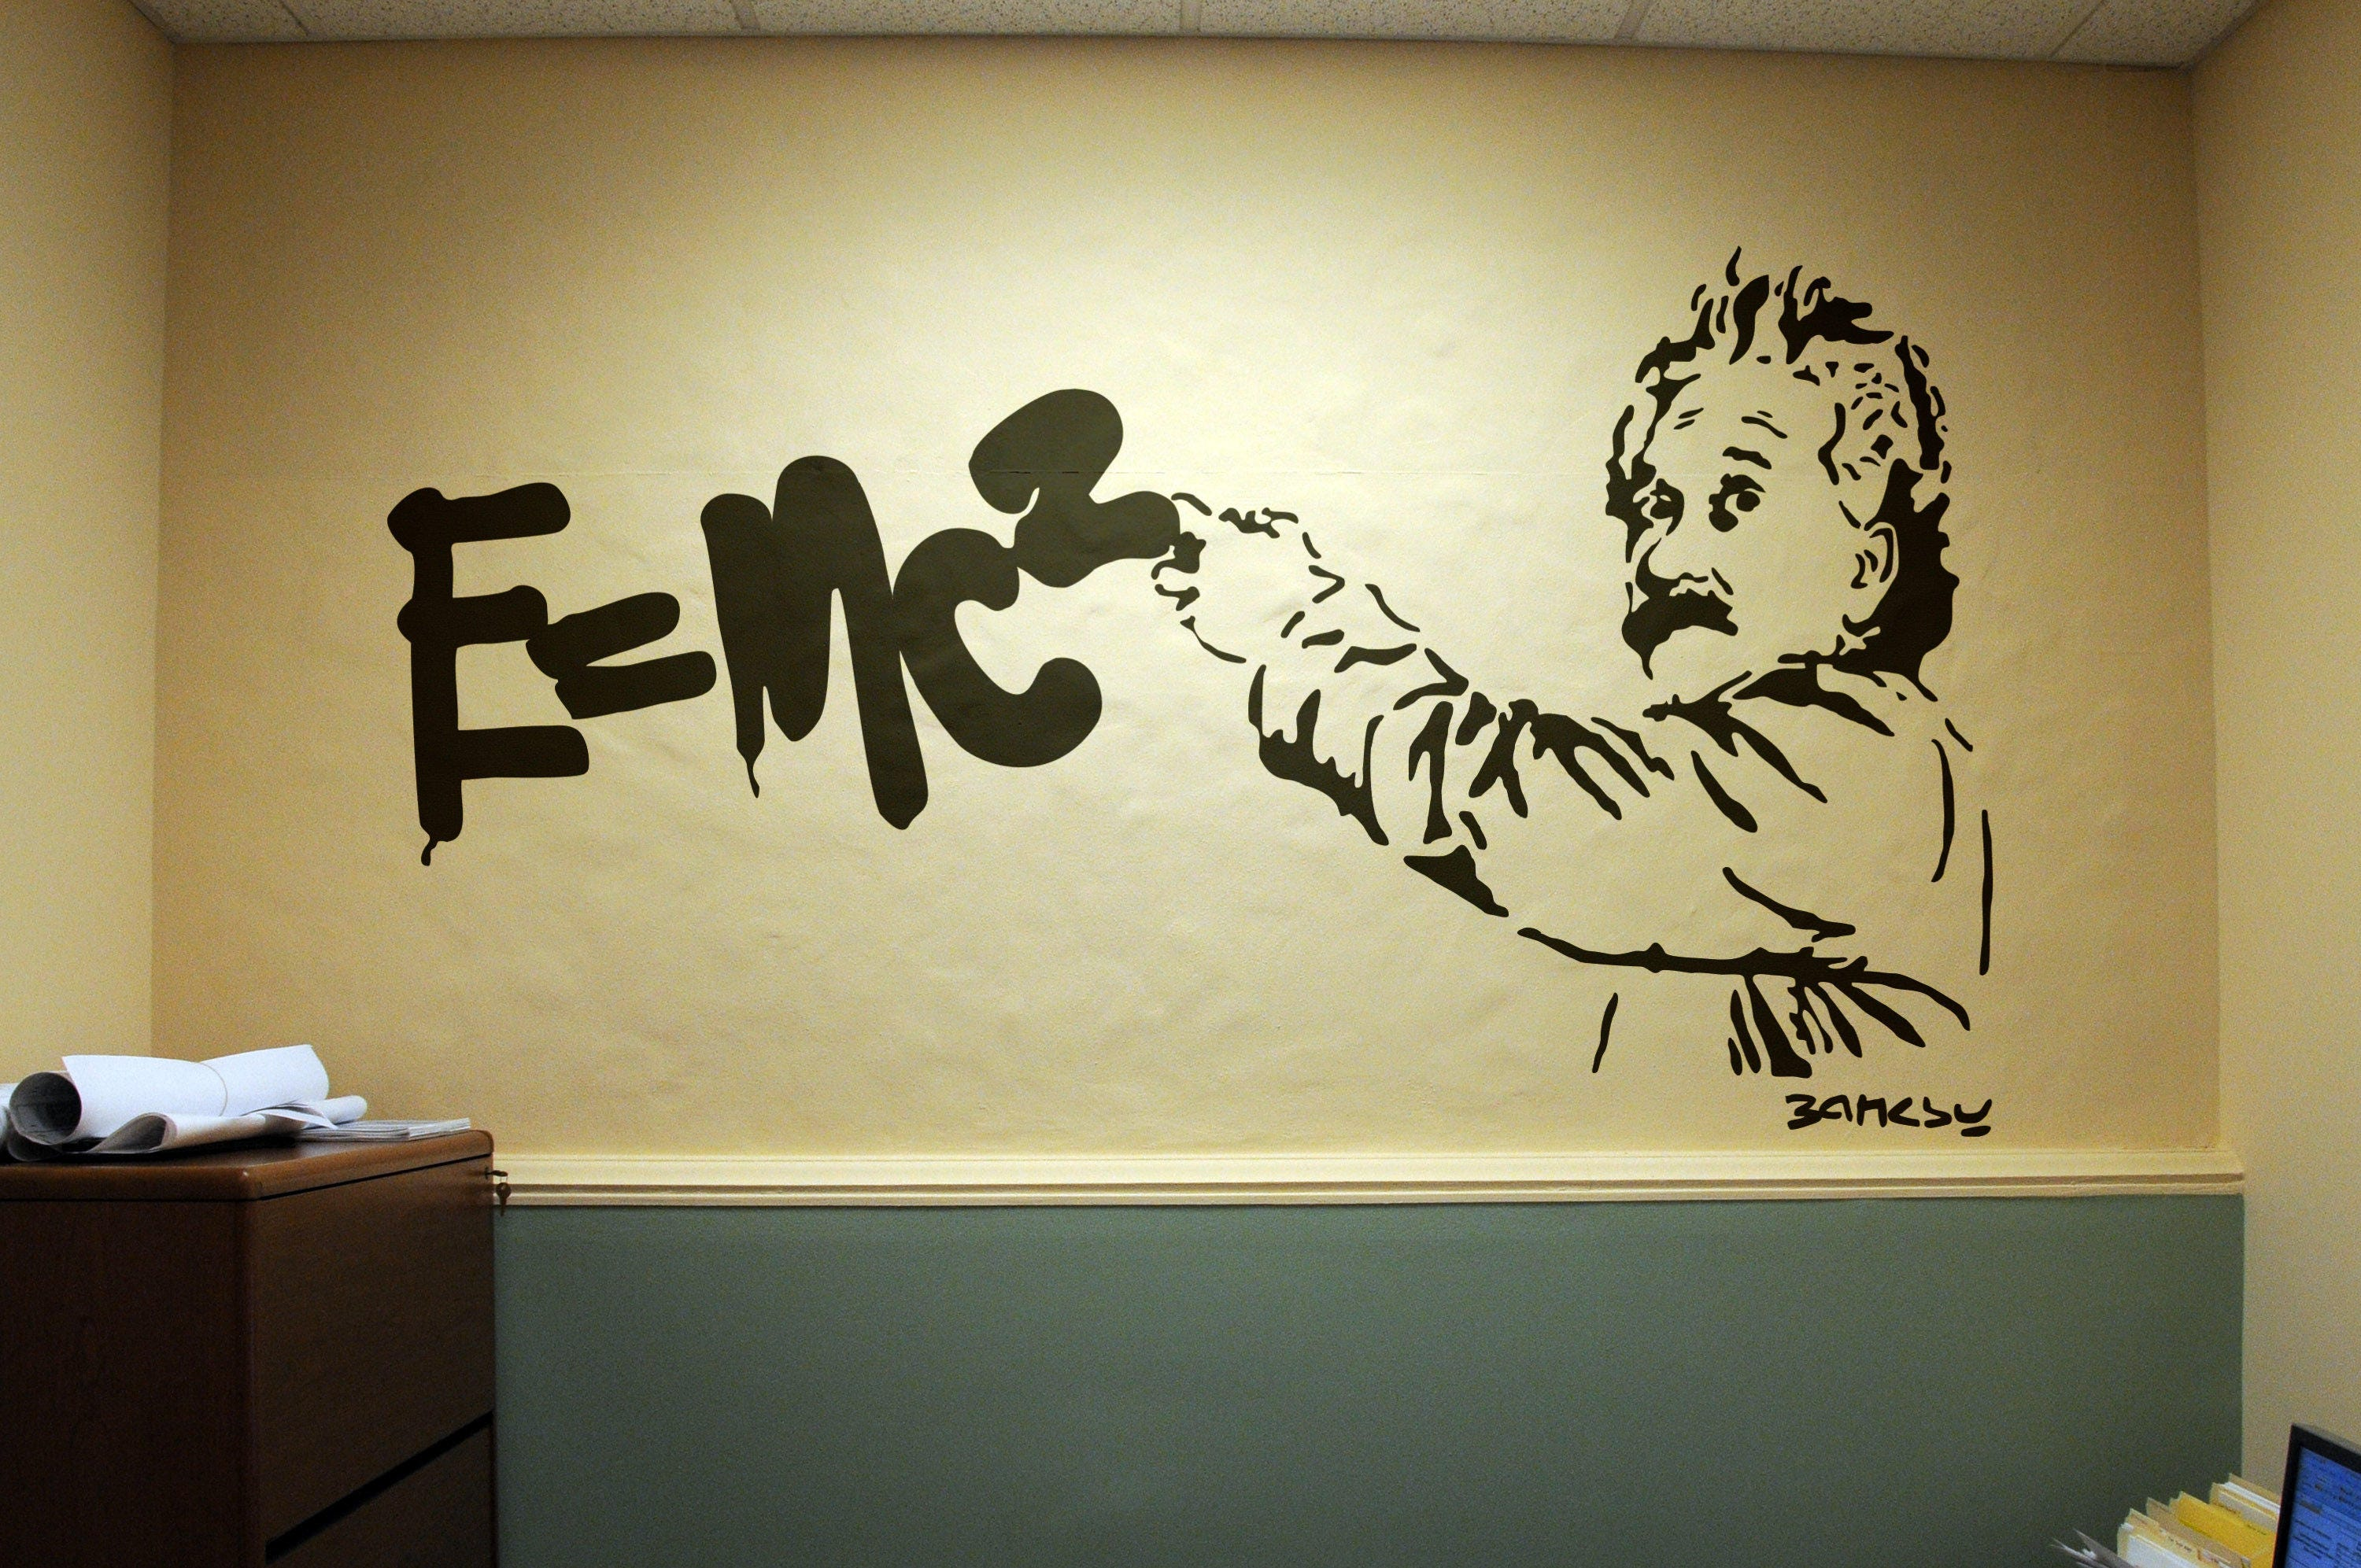 Banksy version of Einstein Theory of Relativity, Wall Decal Sticker ...